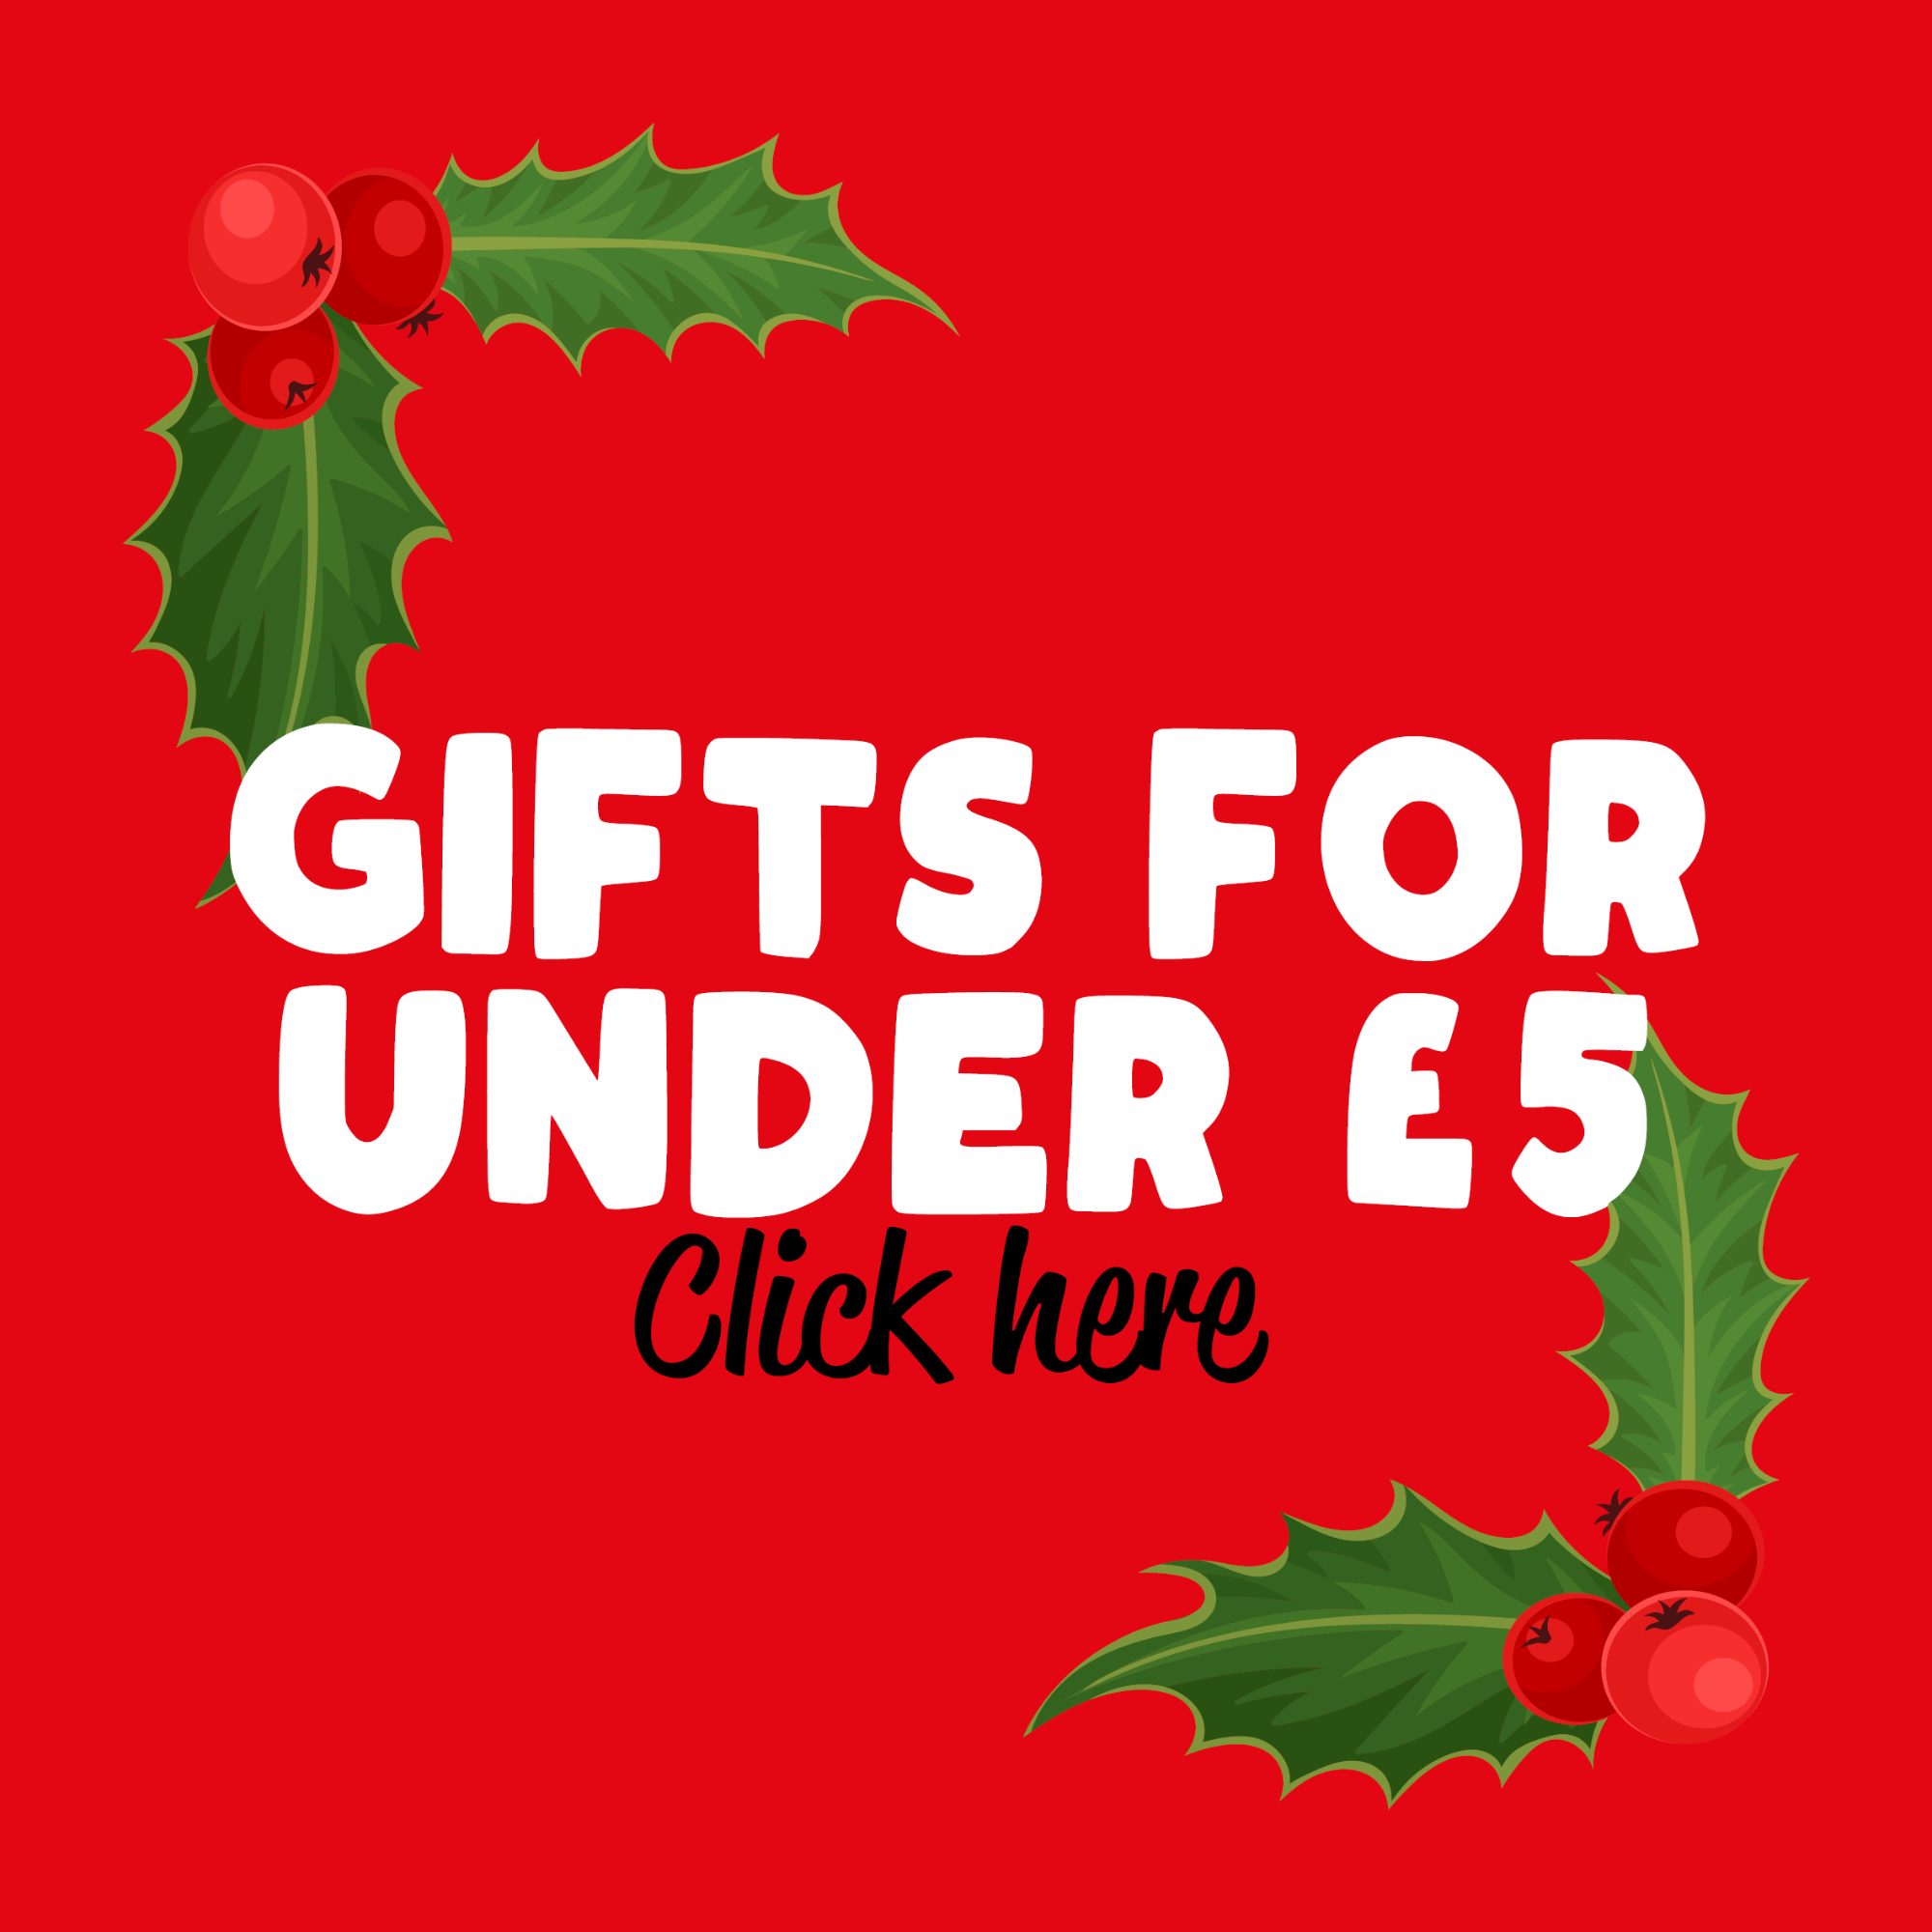 Funny christmas gifts for under £5